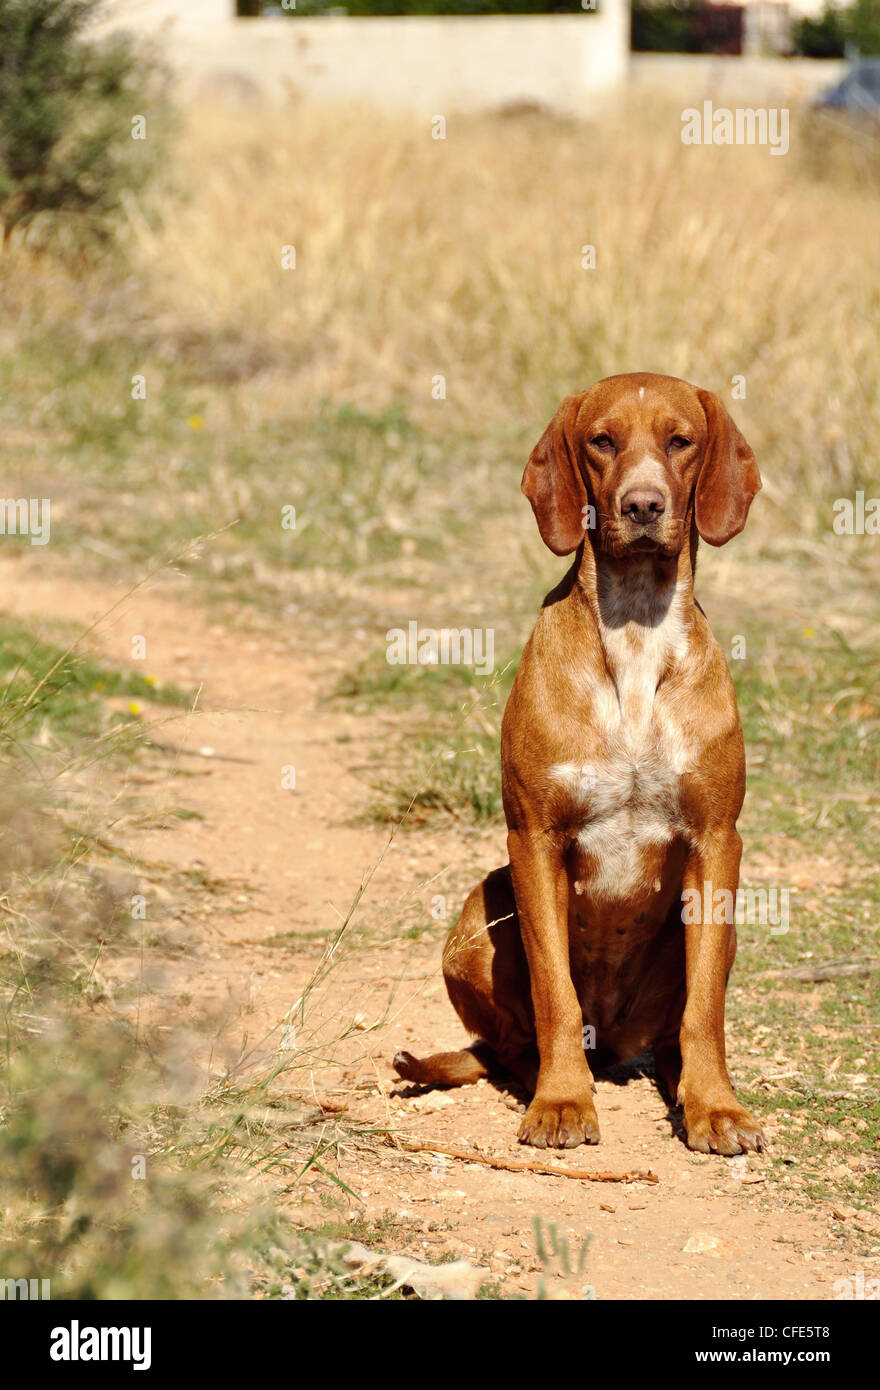 Stray hound sitting alone in a field - Stock Image